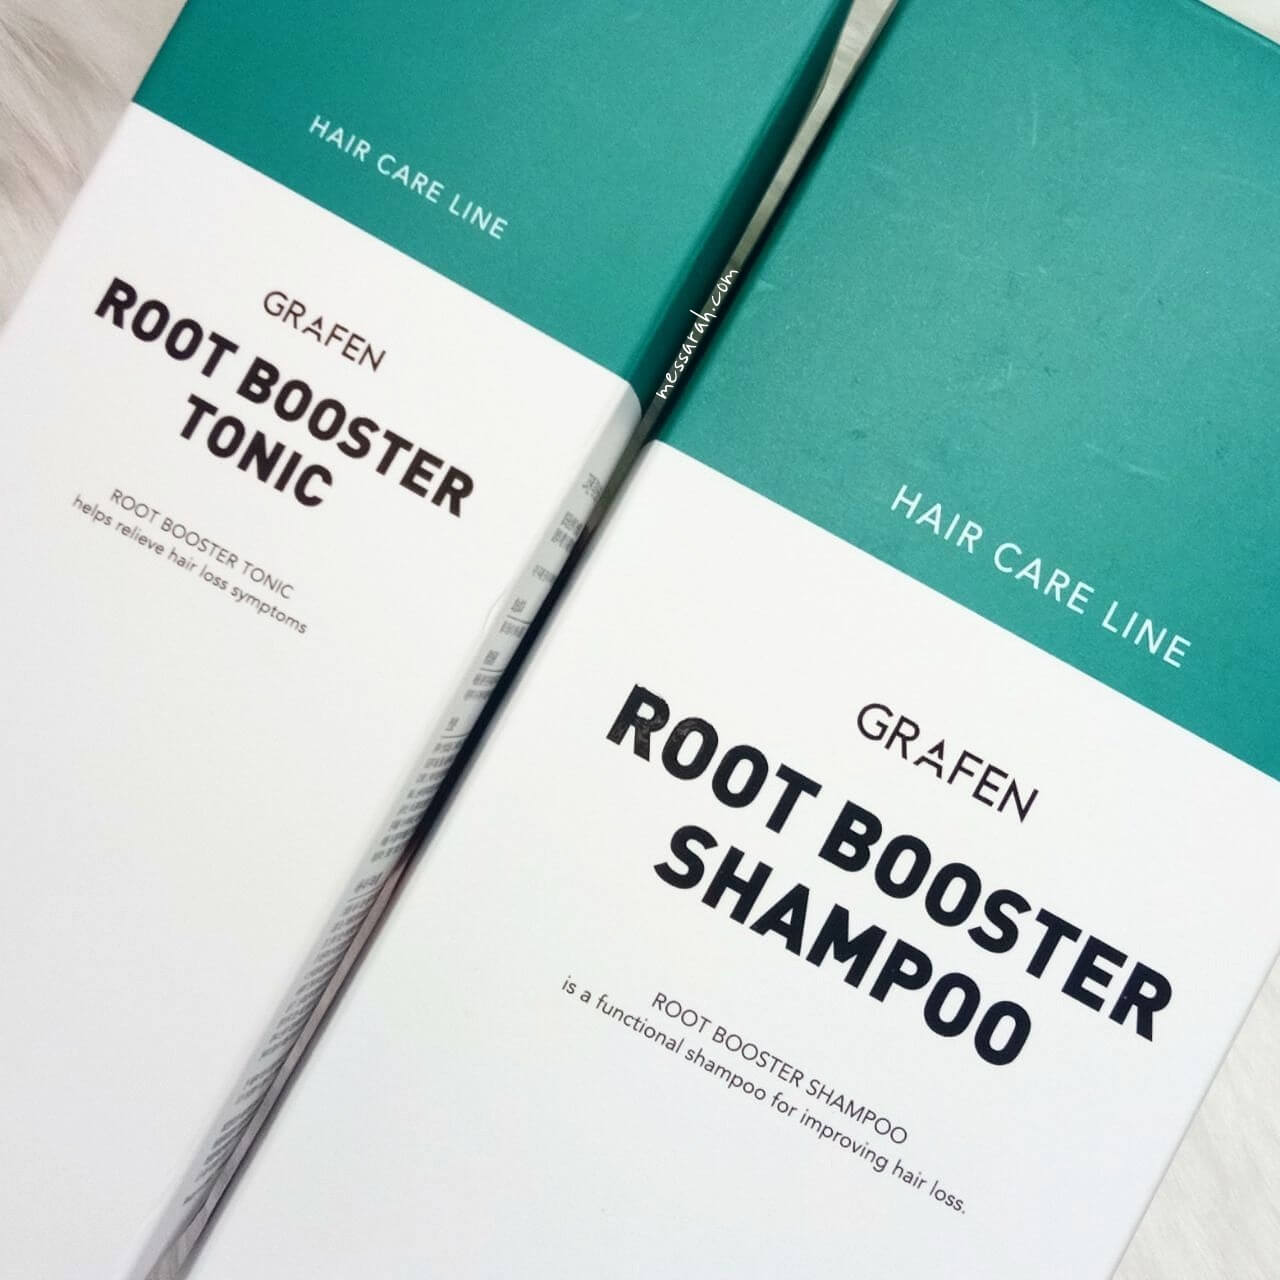 Grafen Root Booster Shampoo and Grafen Root Booster Tonic Review